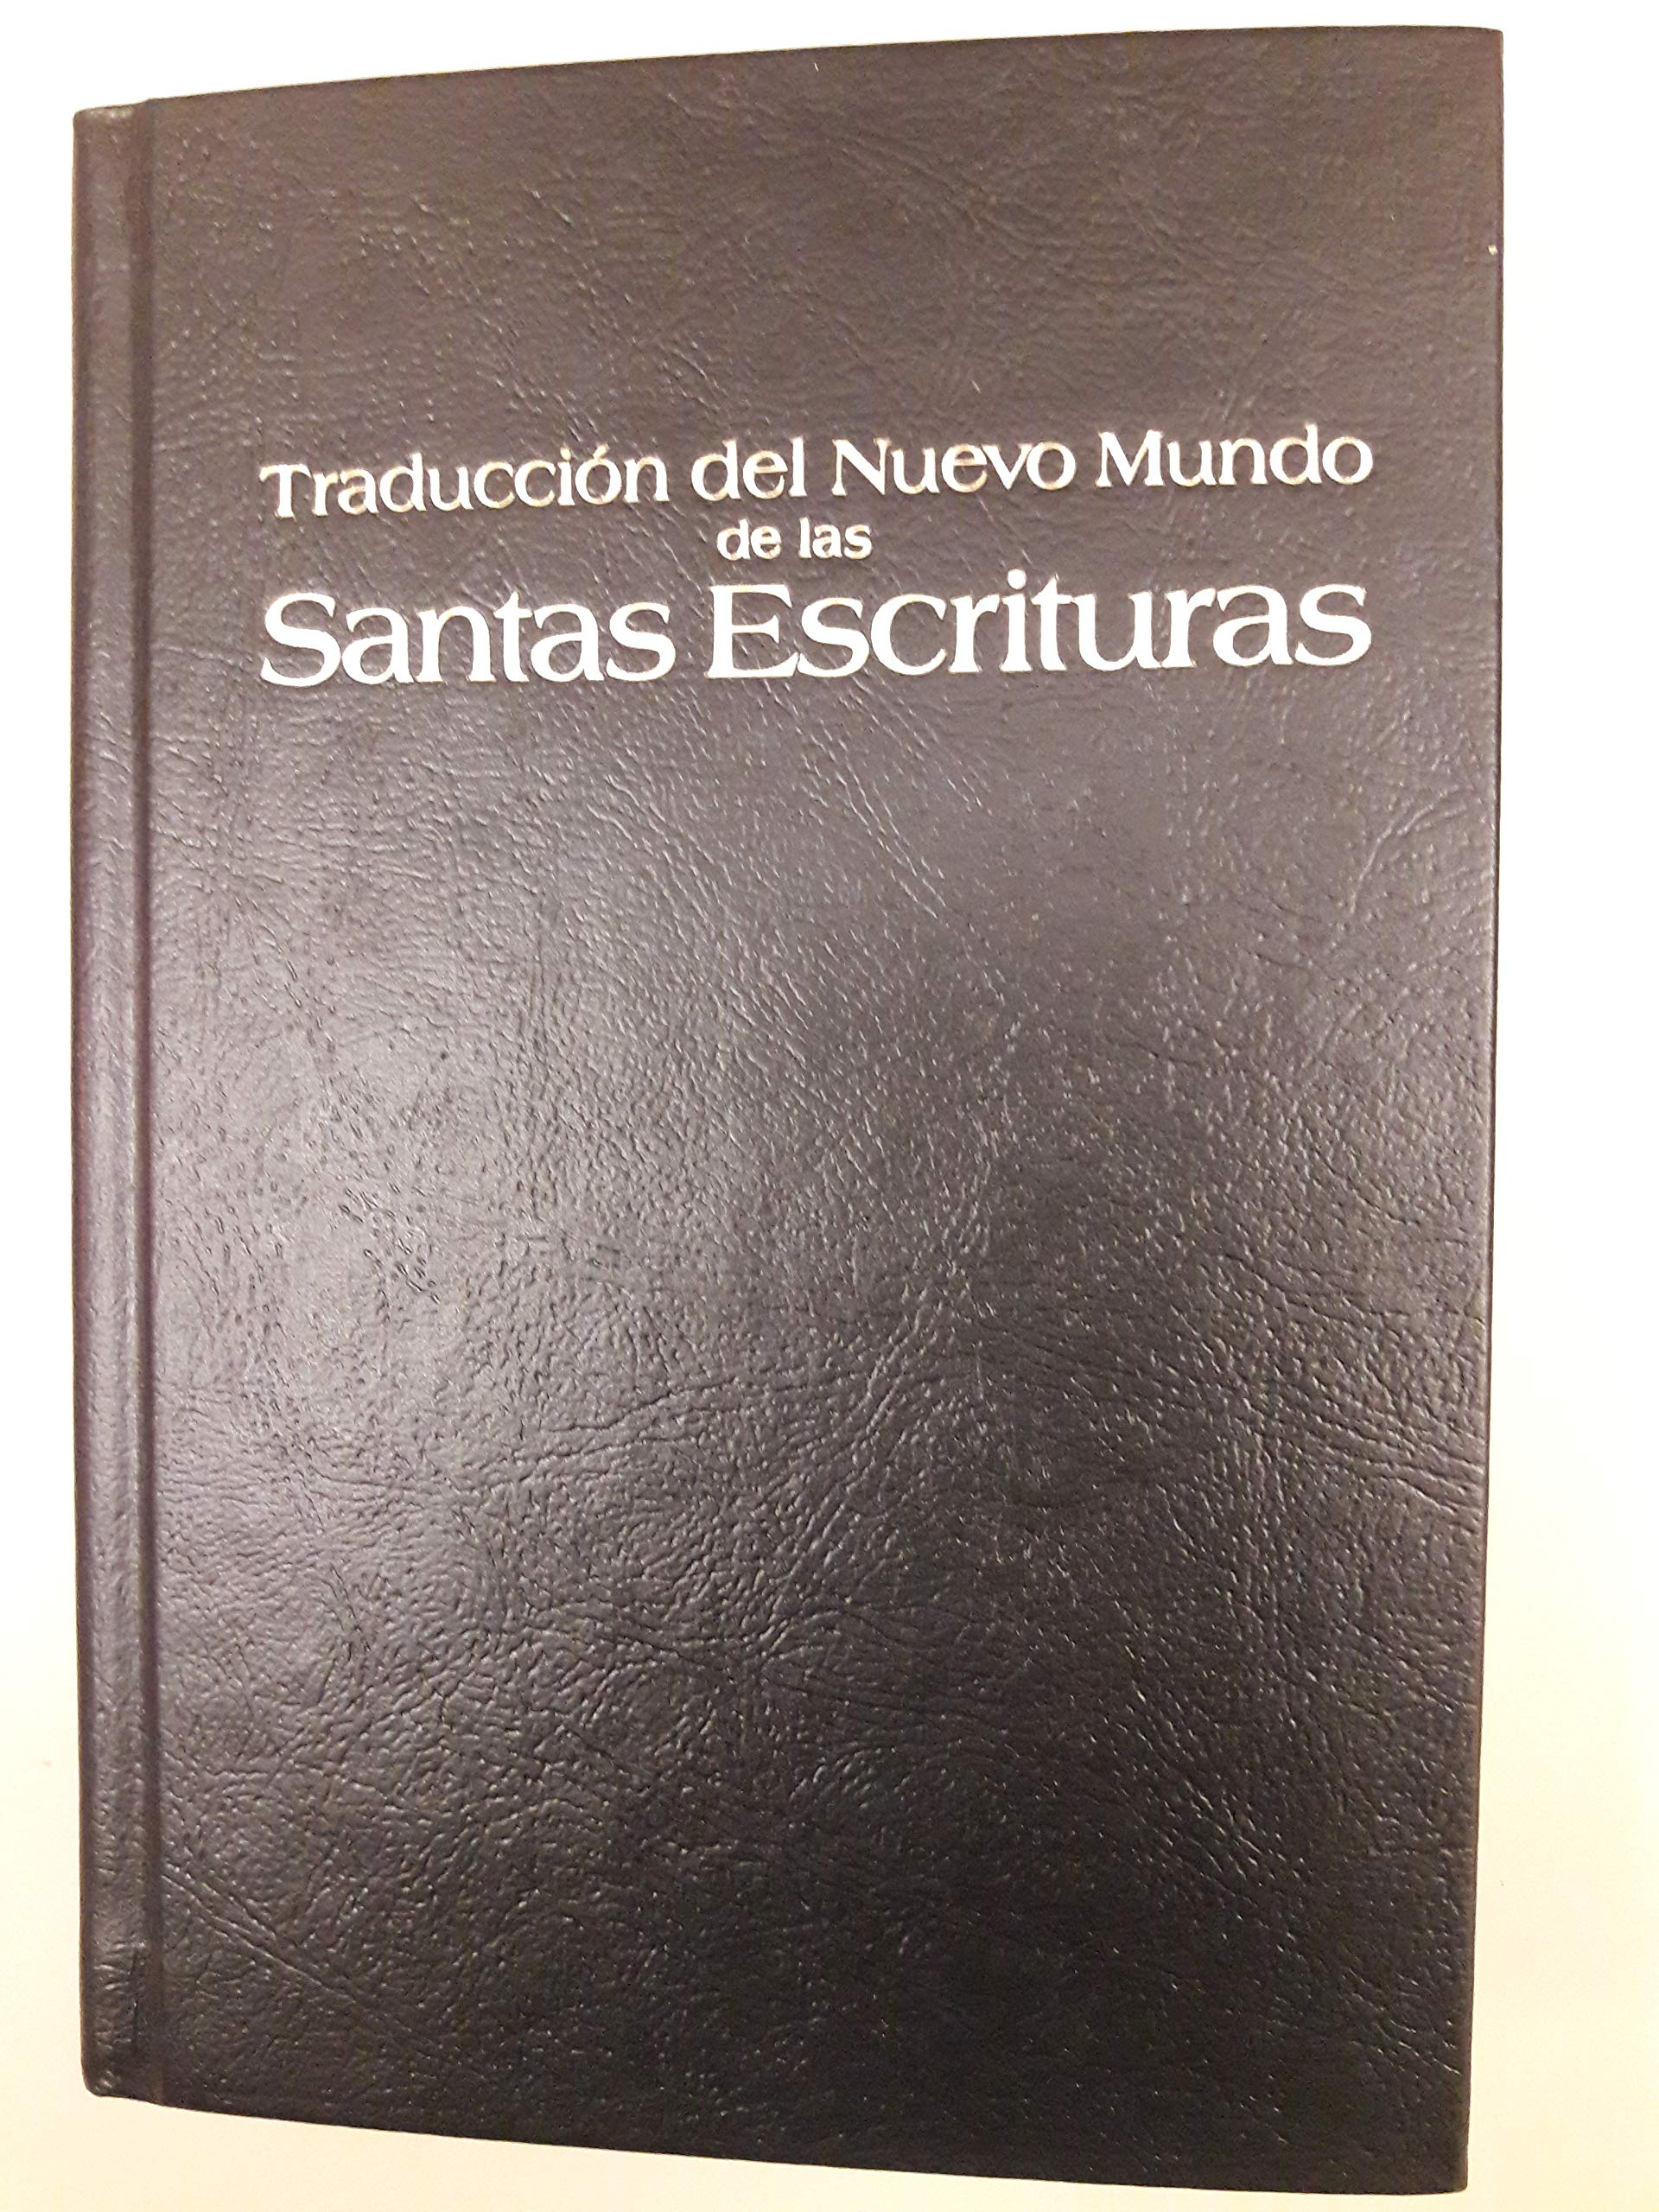 Traduccion Del Nuevo Mundo De Las Santas Escrituras Watchtower Bible And Tract Society Of New York Books